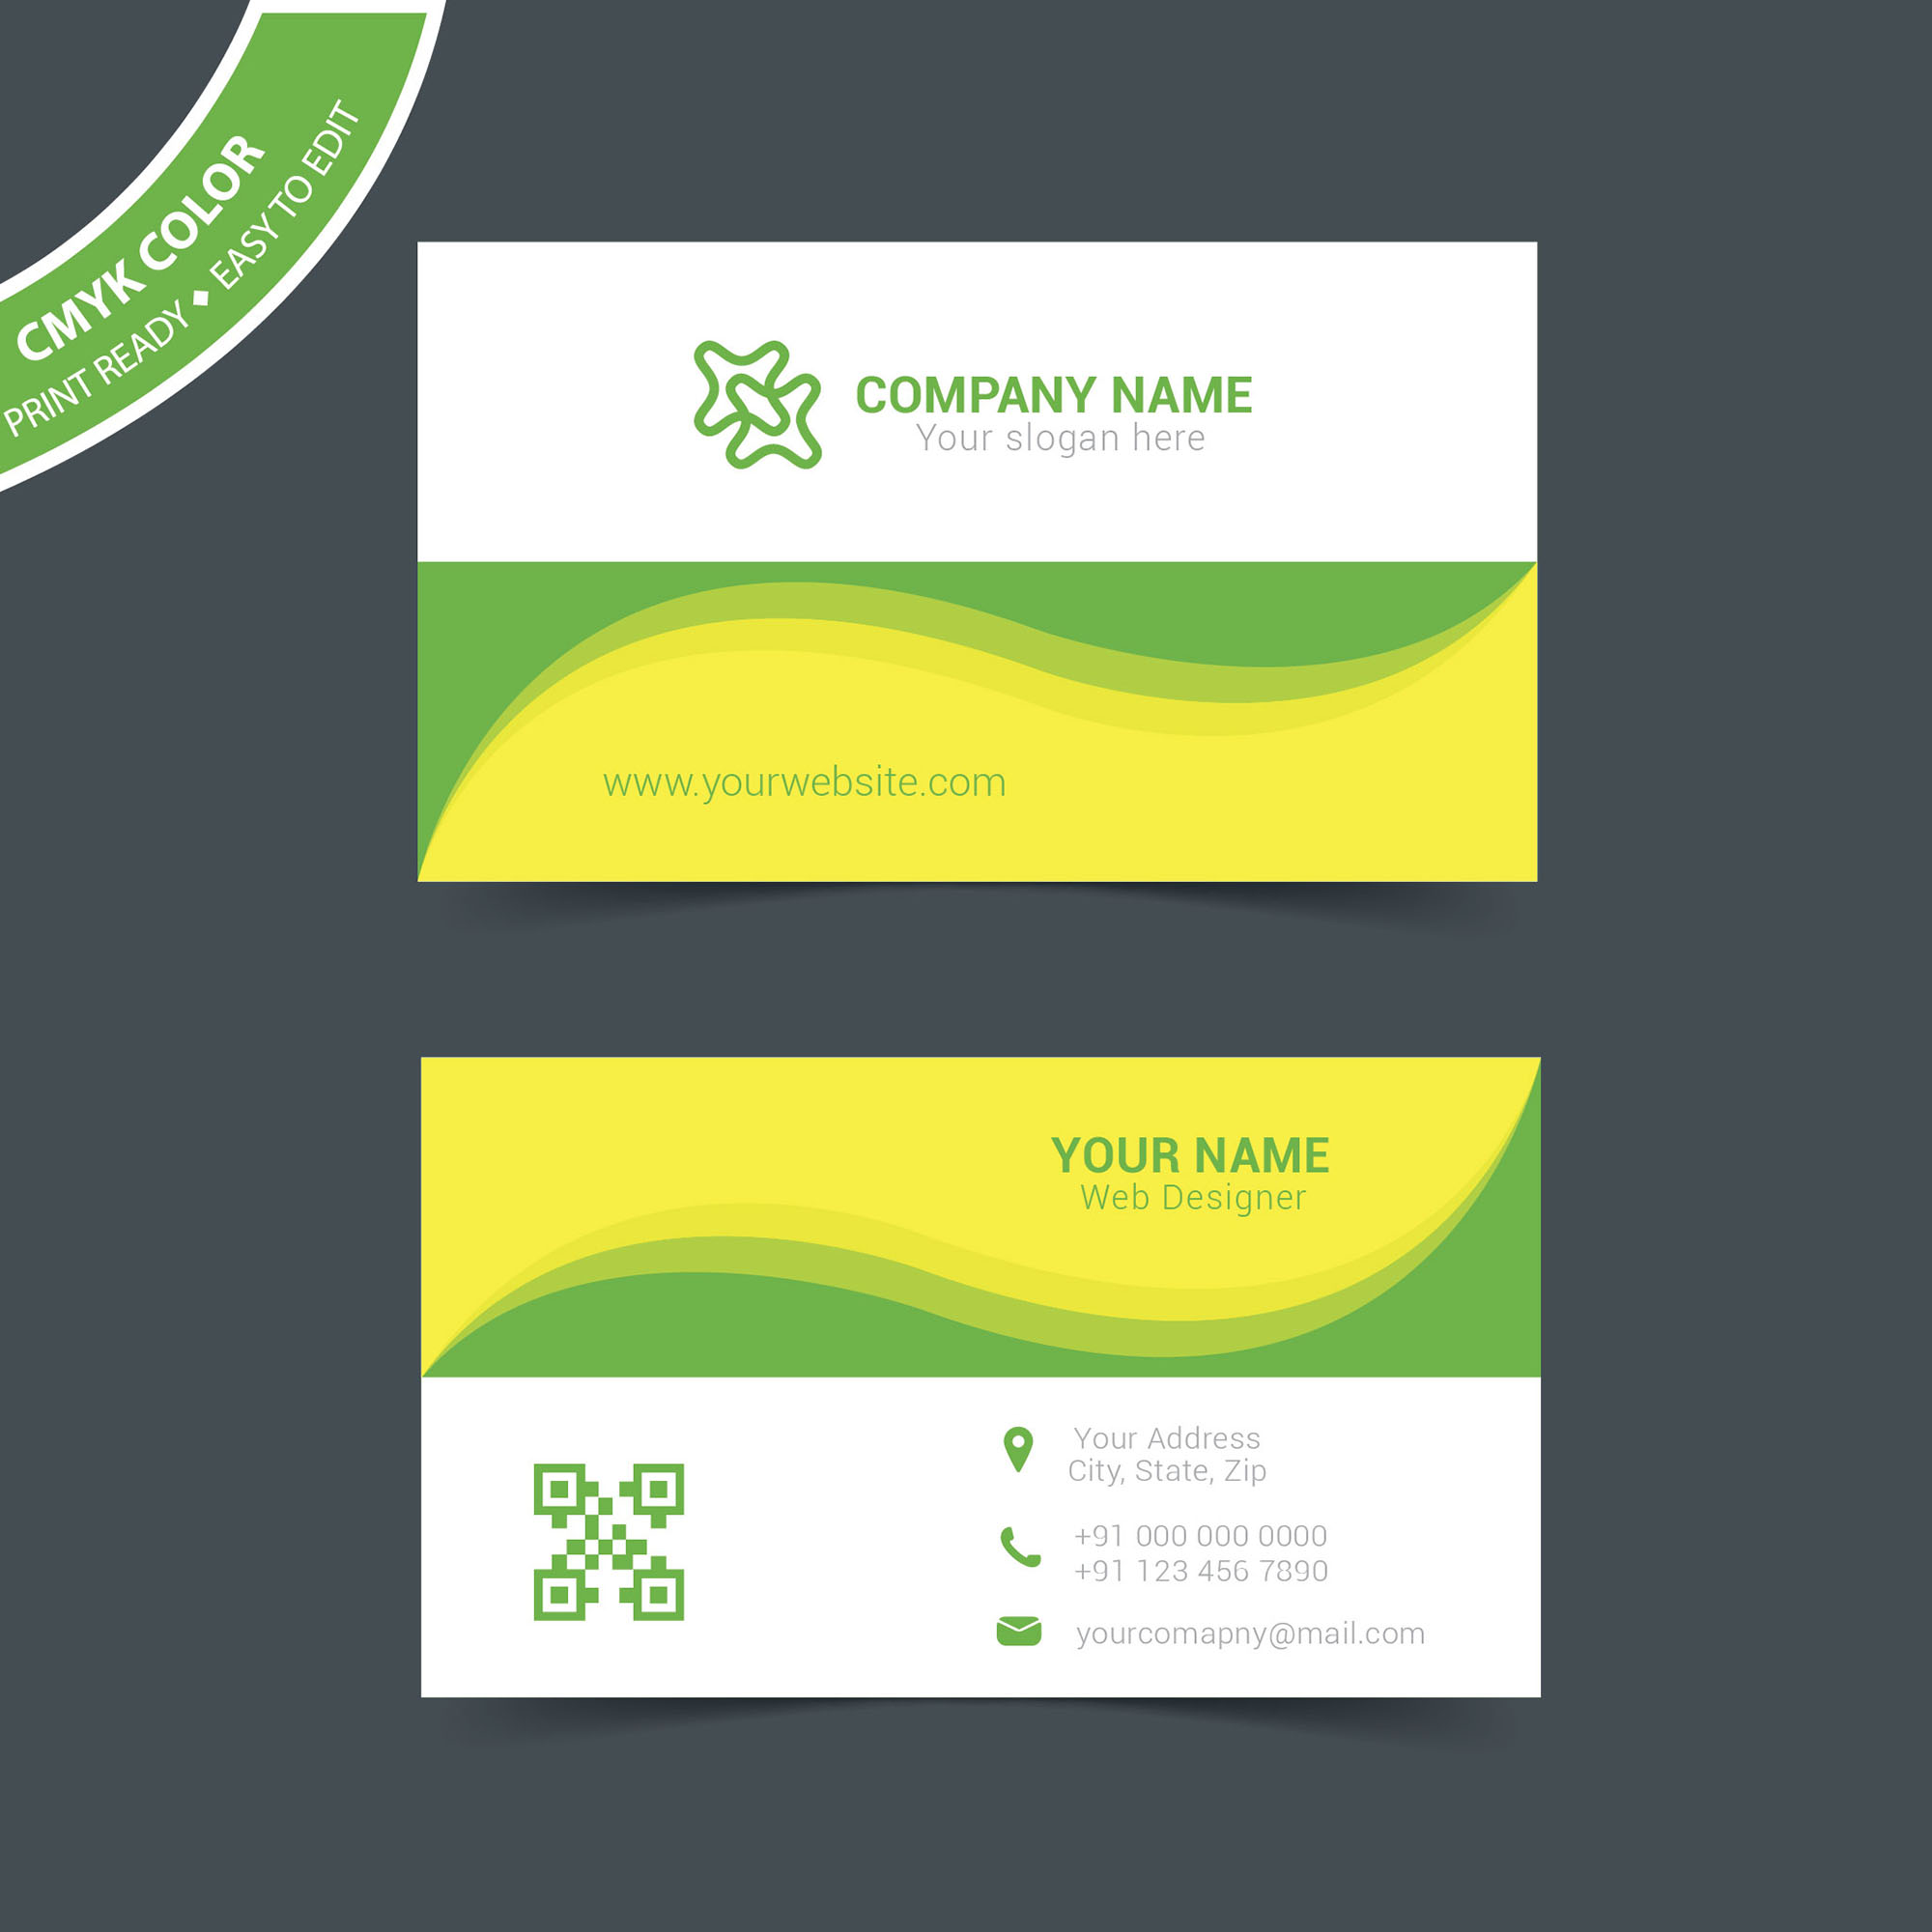 Corporate business card vector free download wisxi business card business cards business card design business card template design templates wajeb